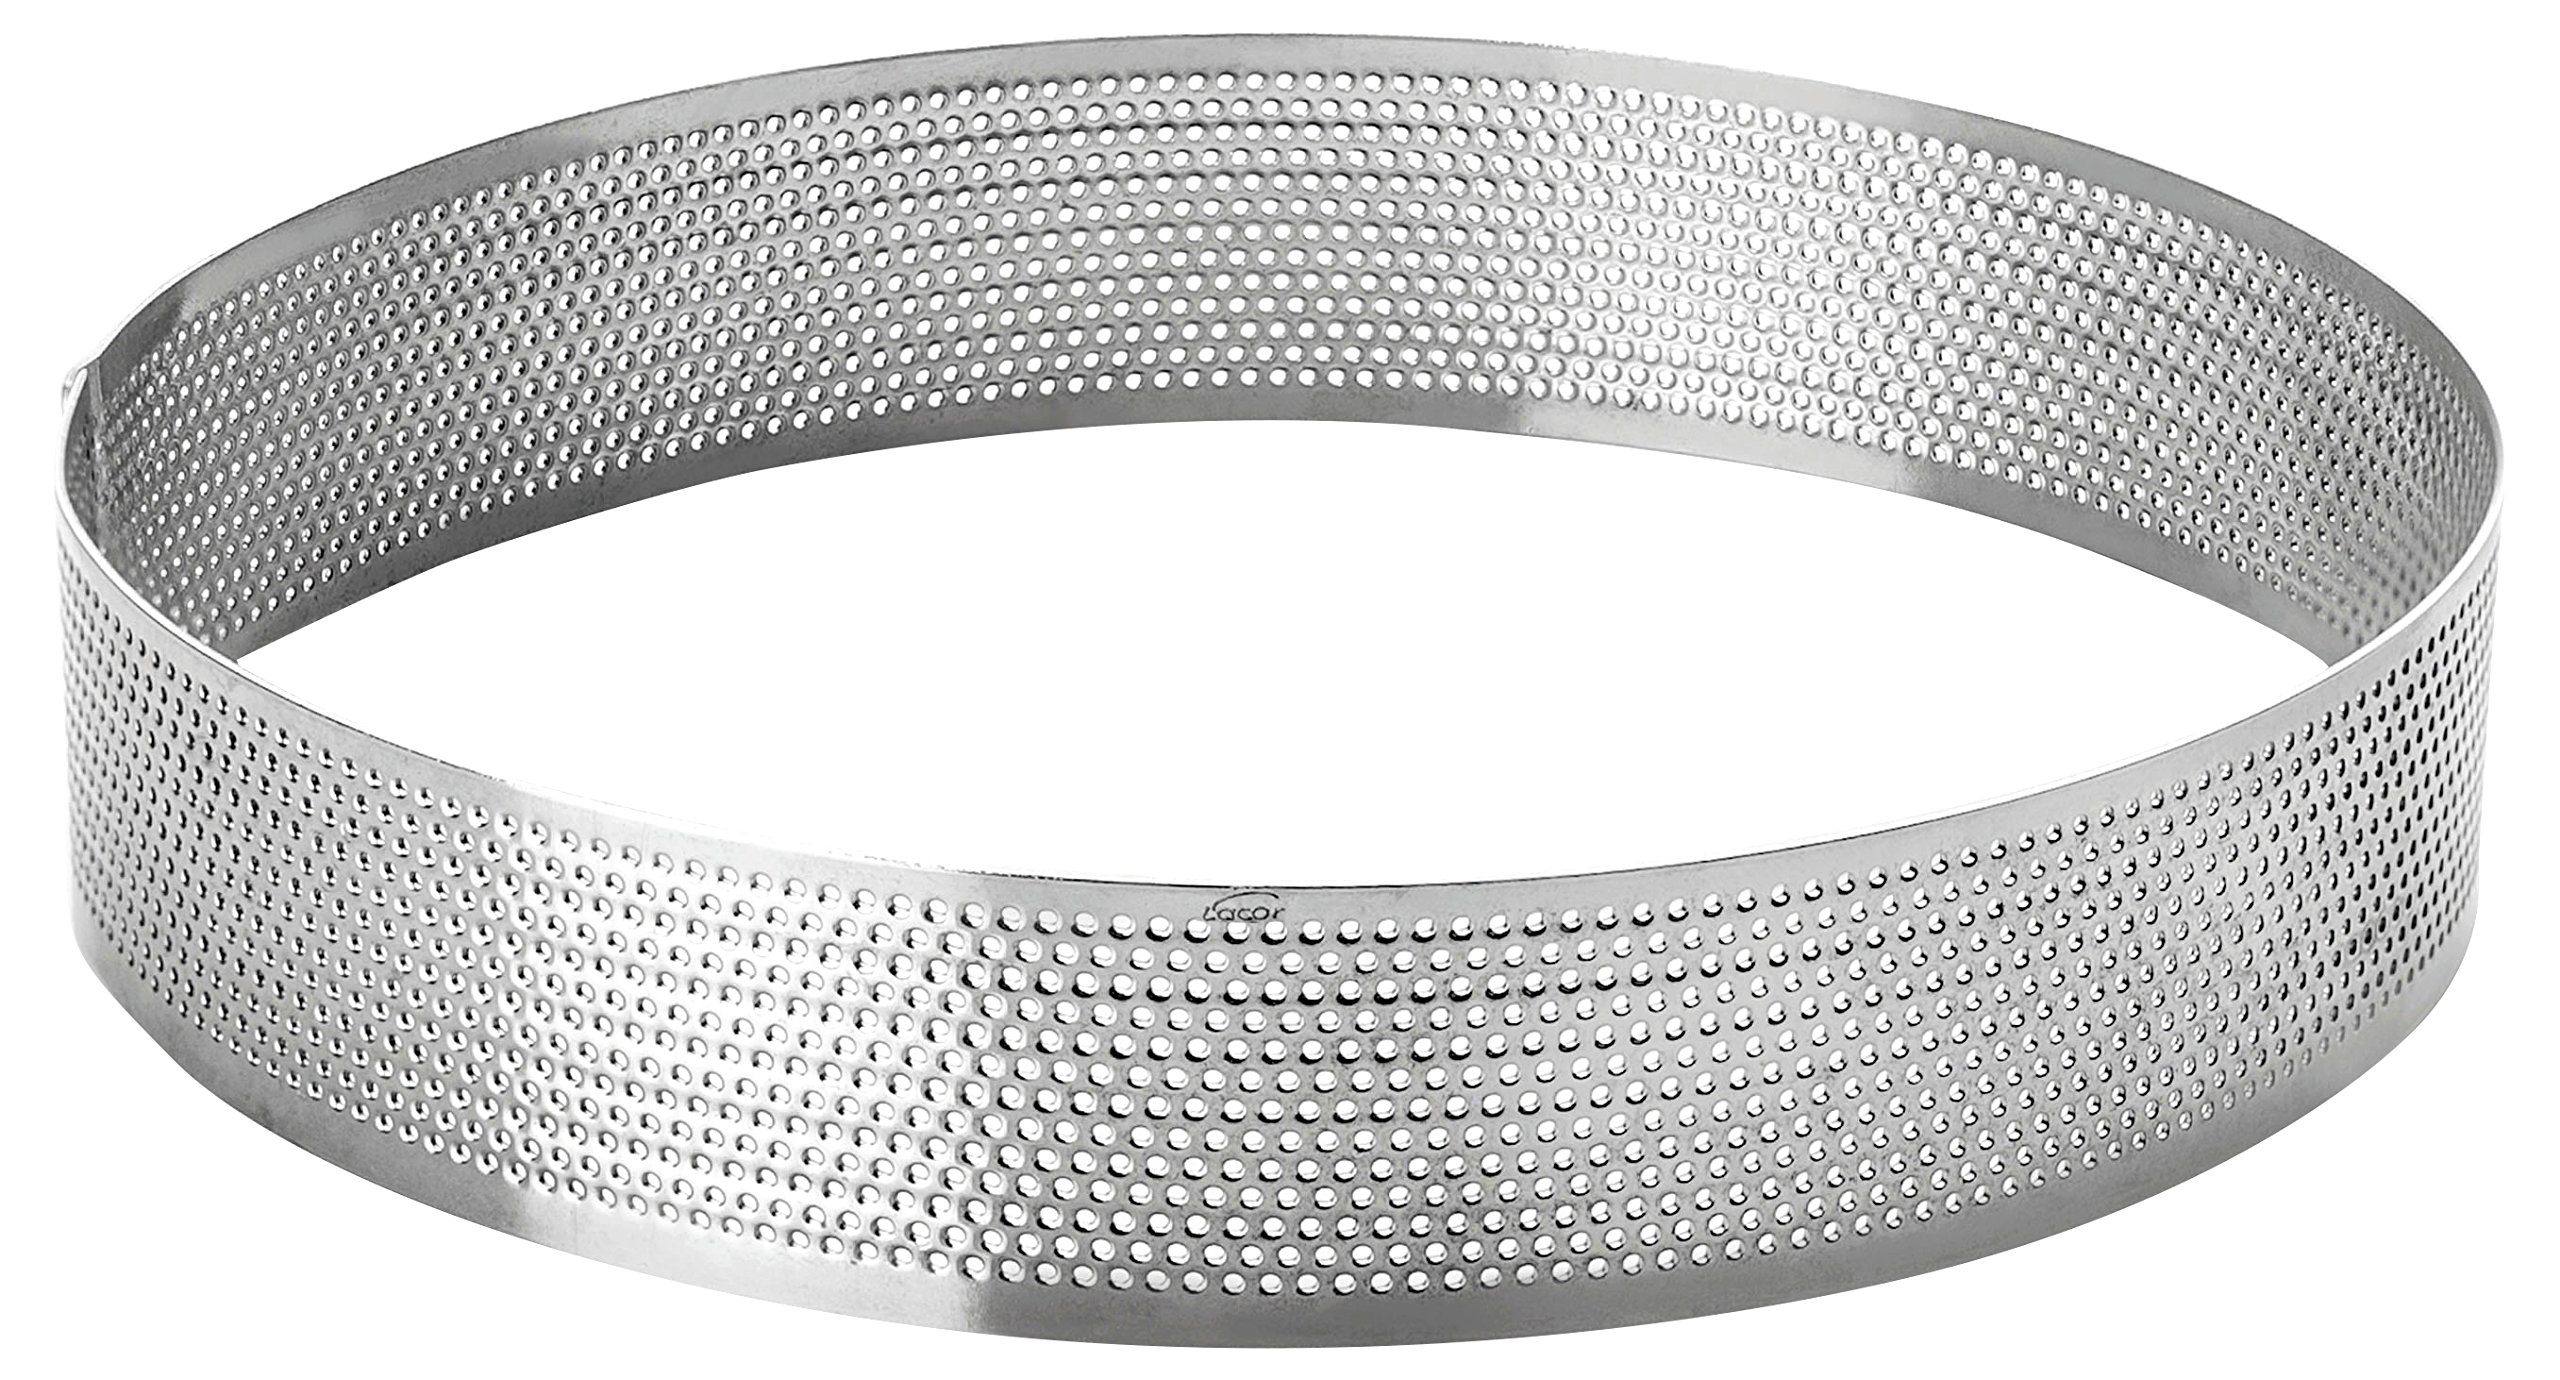 LACOR 68544 Perforated Cake Mould, 24 x 2 cm, Silver by LACOR